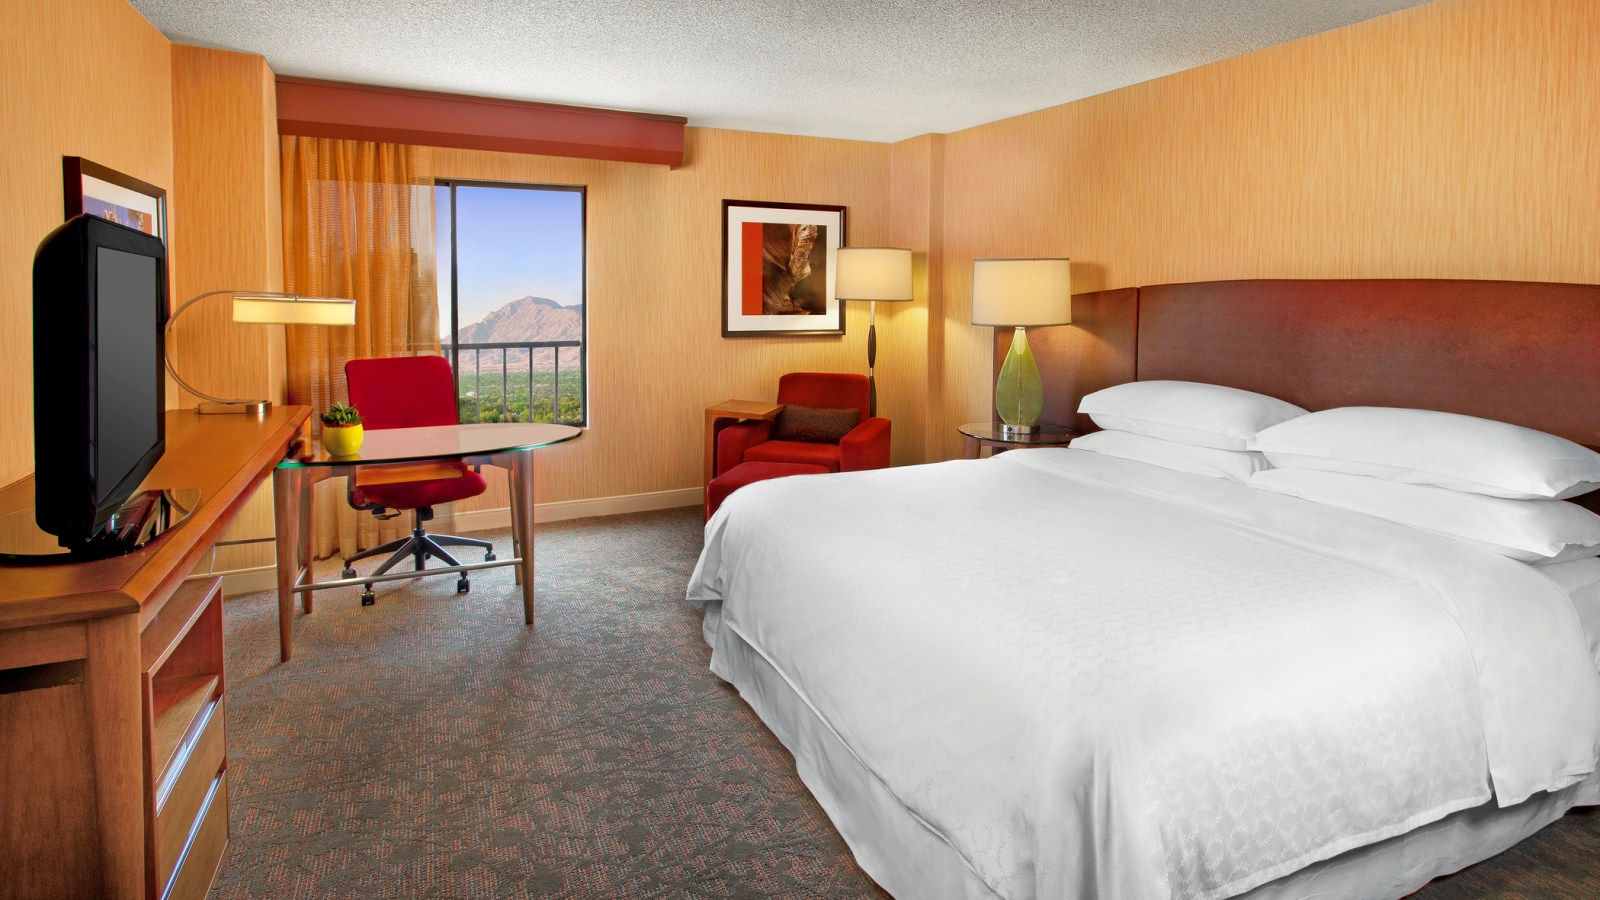 Albuquerque Restaurant Near ABQ Airport - Room Service